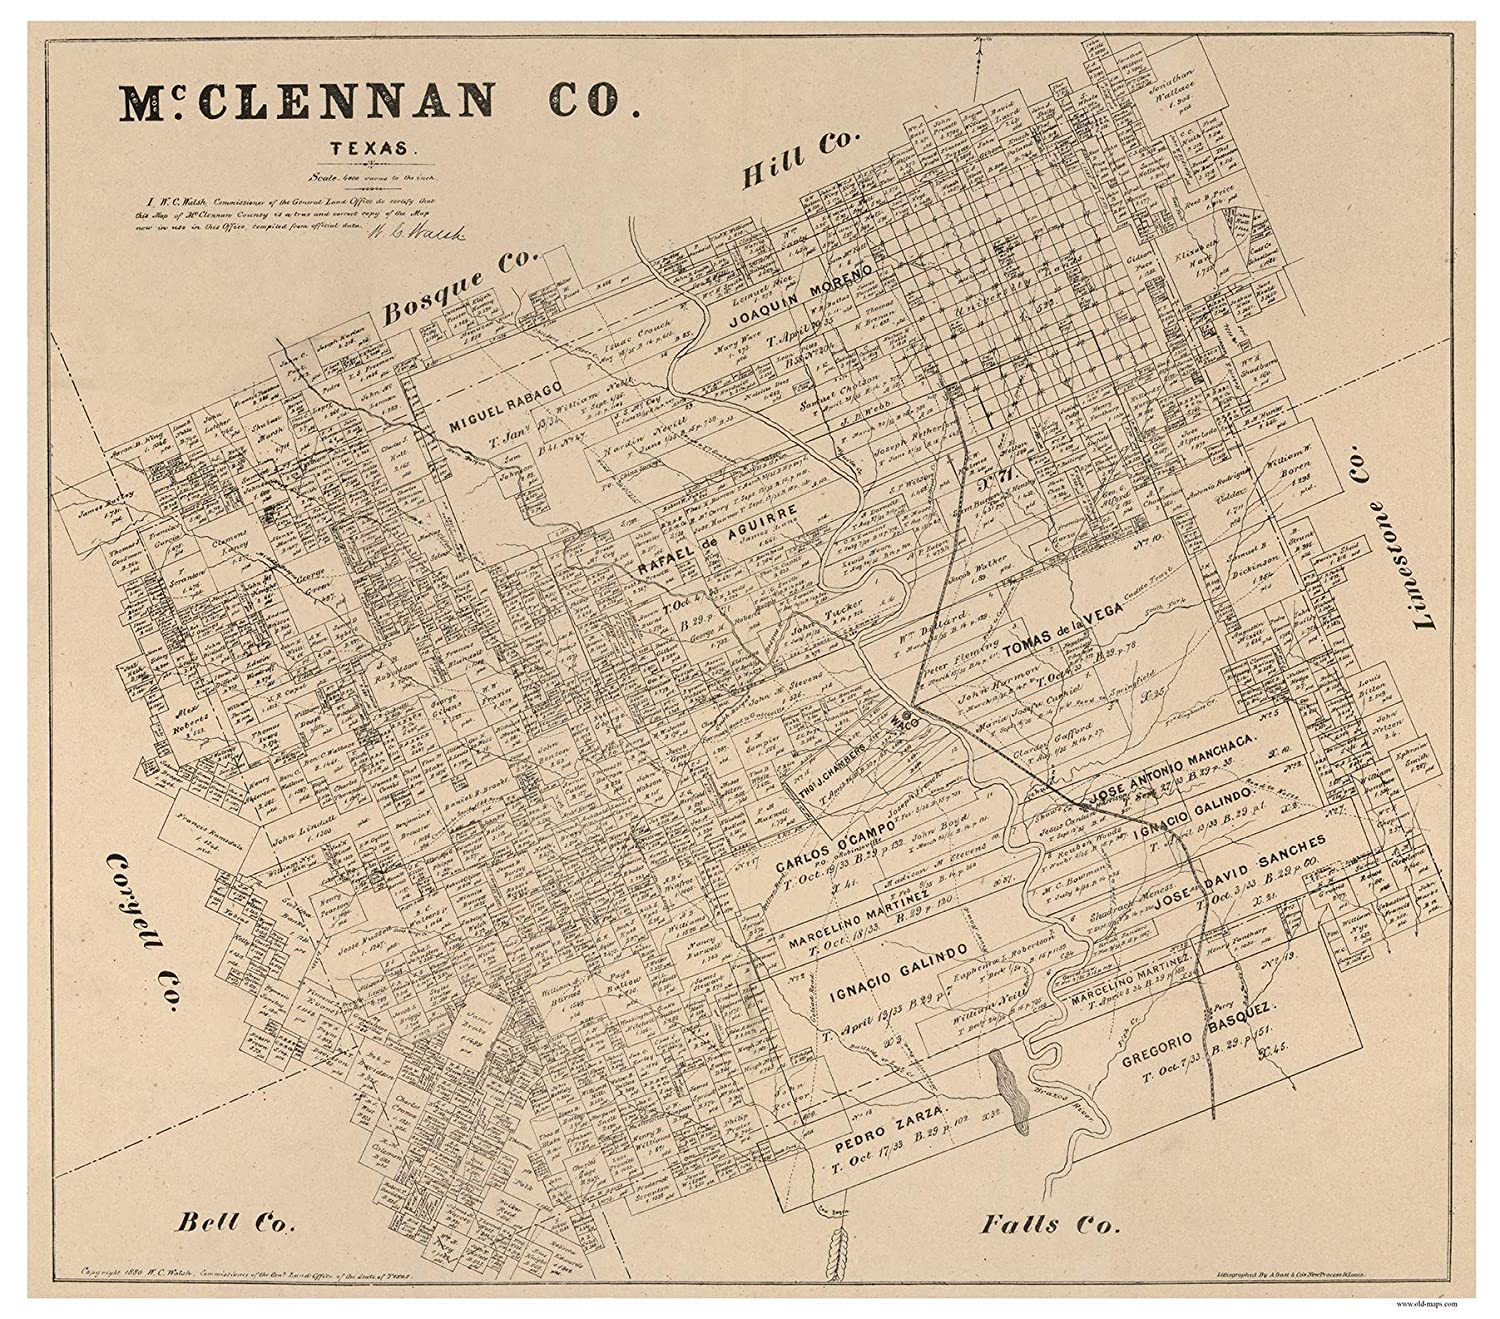 Map Of Texas 1880.Amazon Com Mclennan County Texas 1880 Wall Map With Land